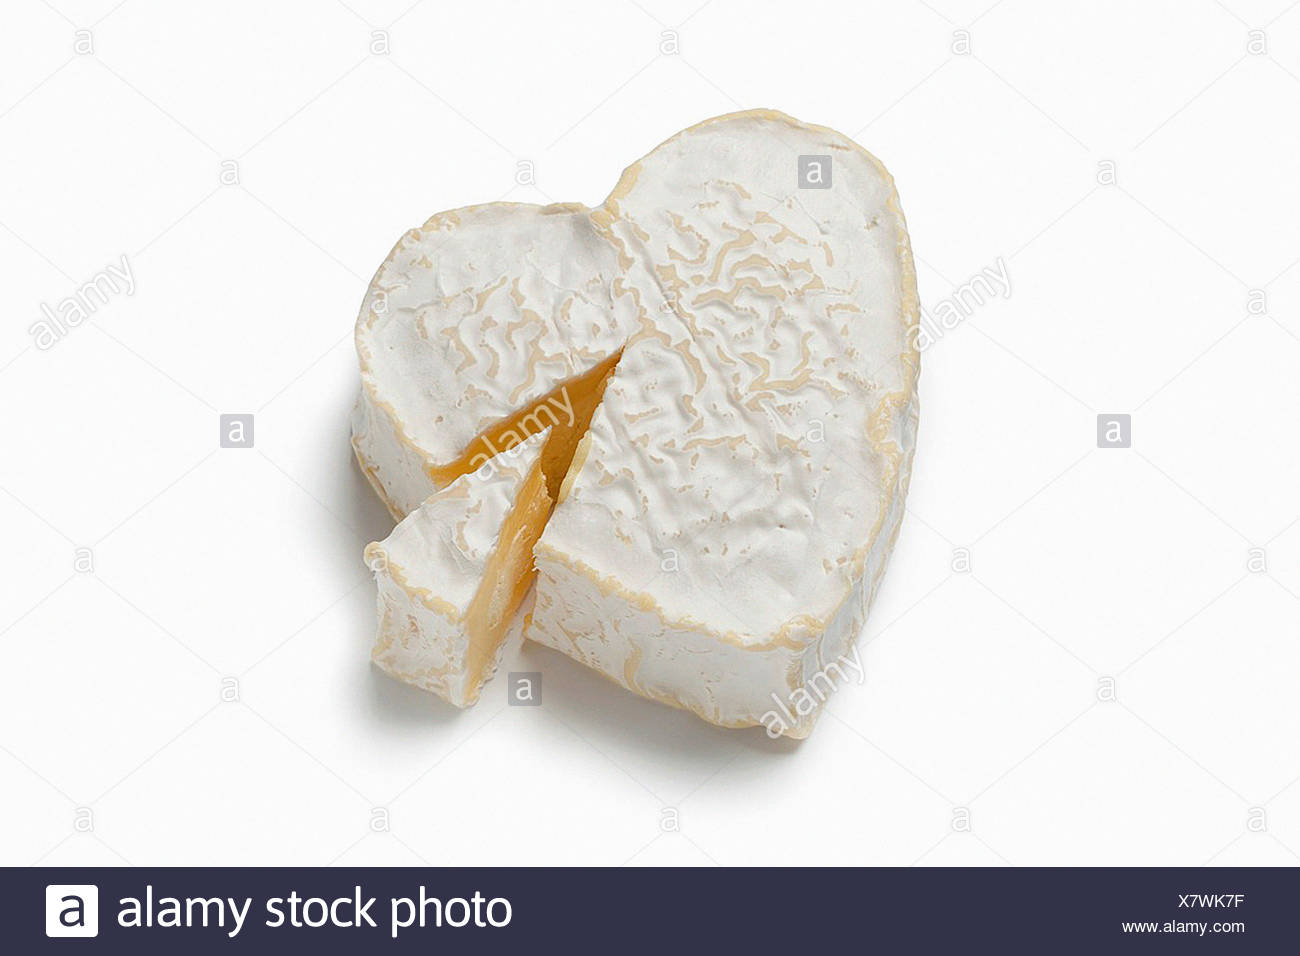 Heartshaped Neufchatel cheese on white background - Stock Image